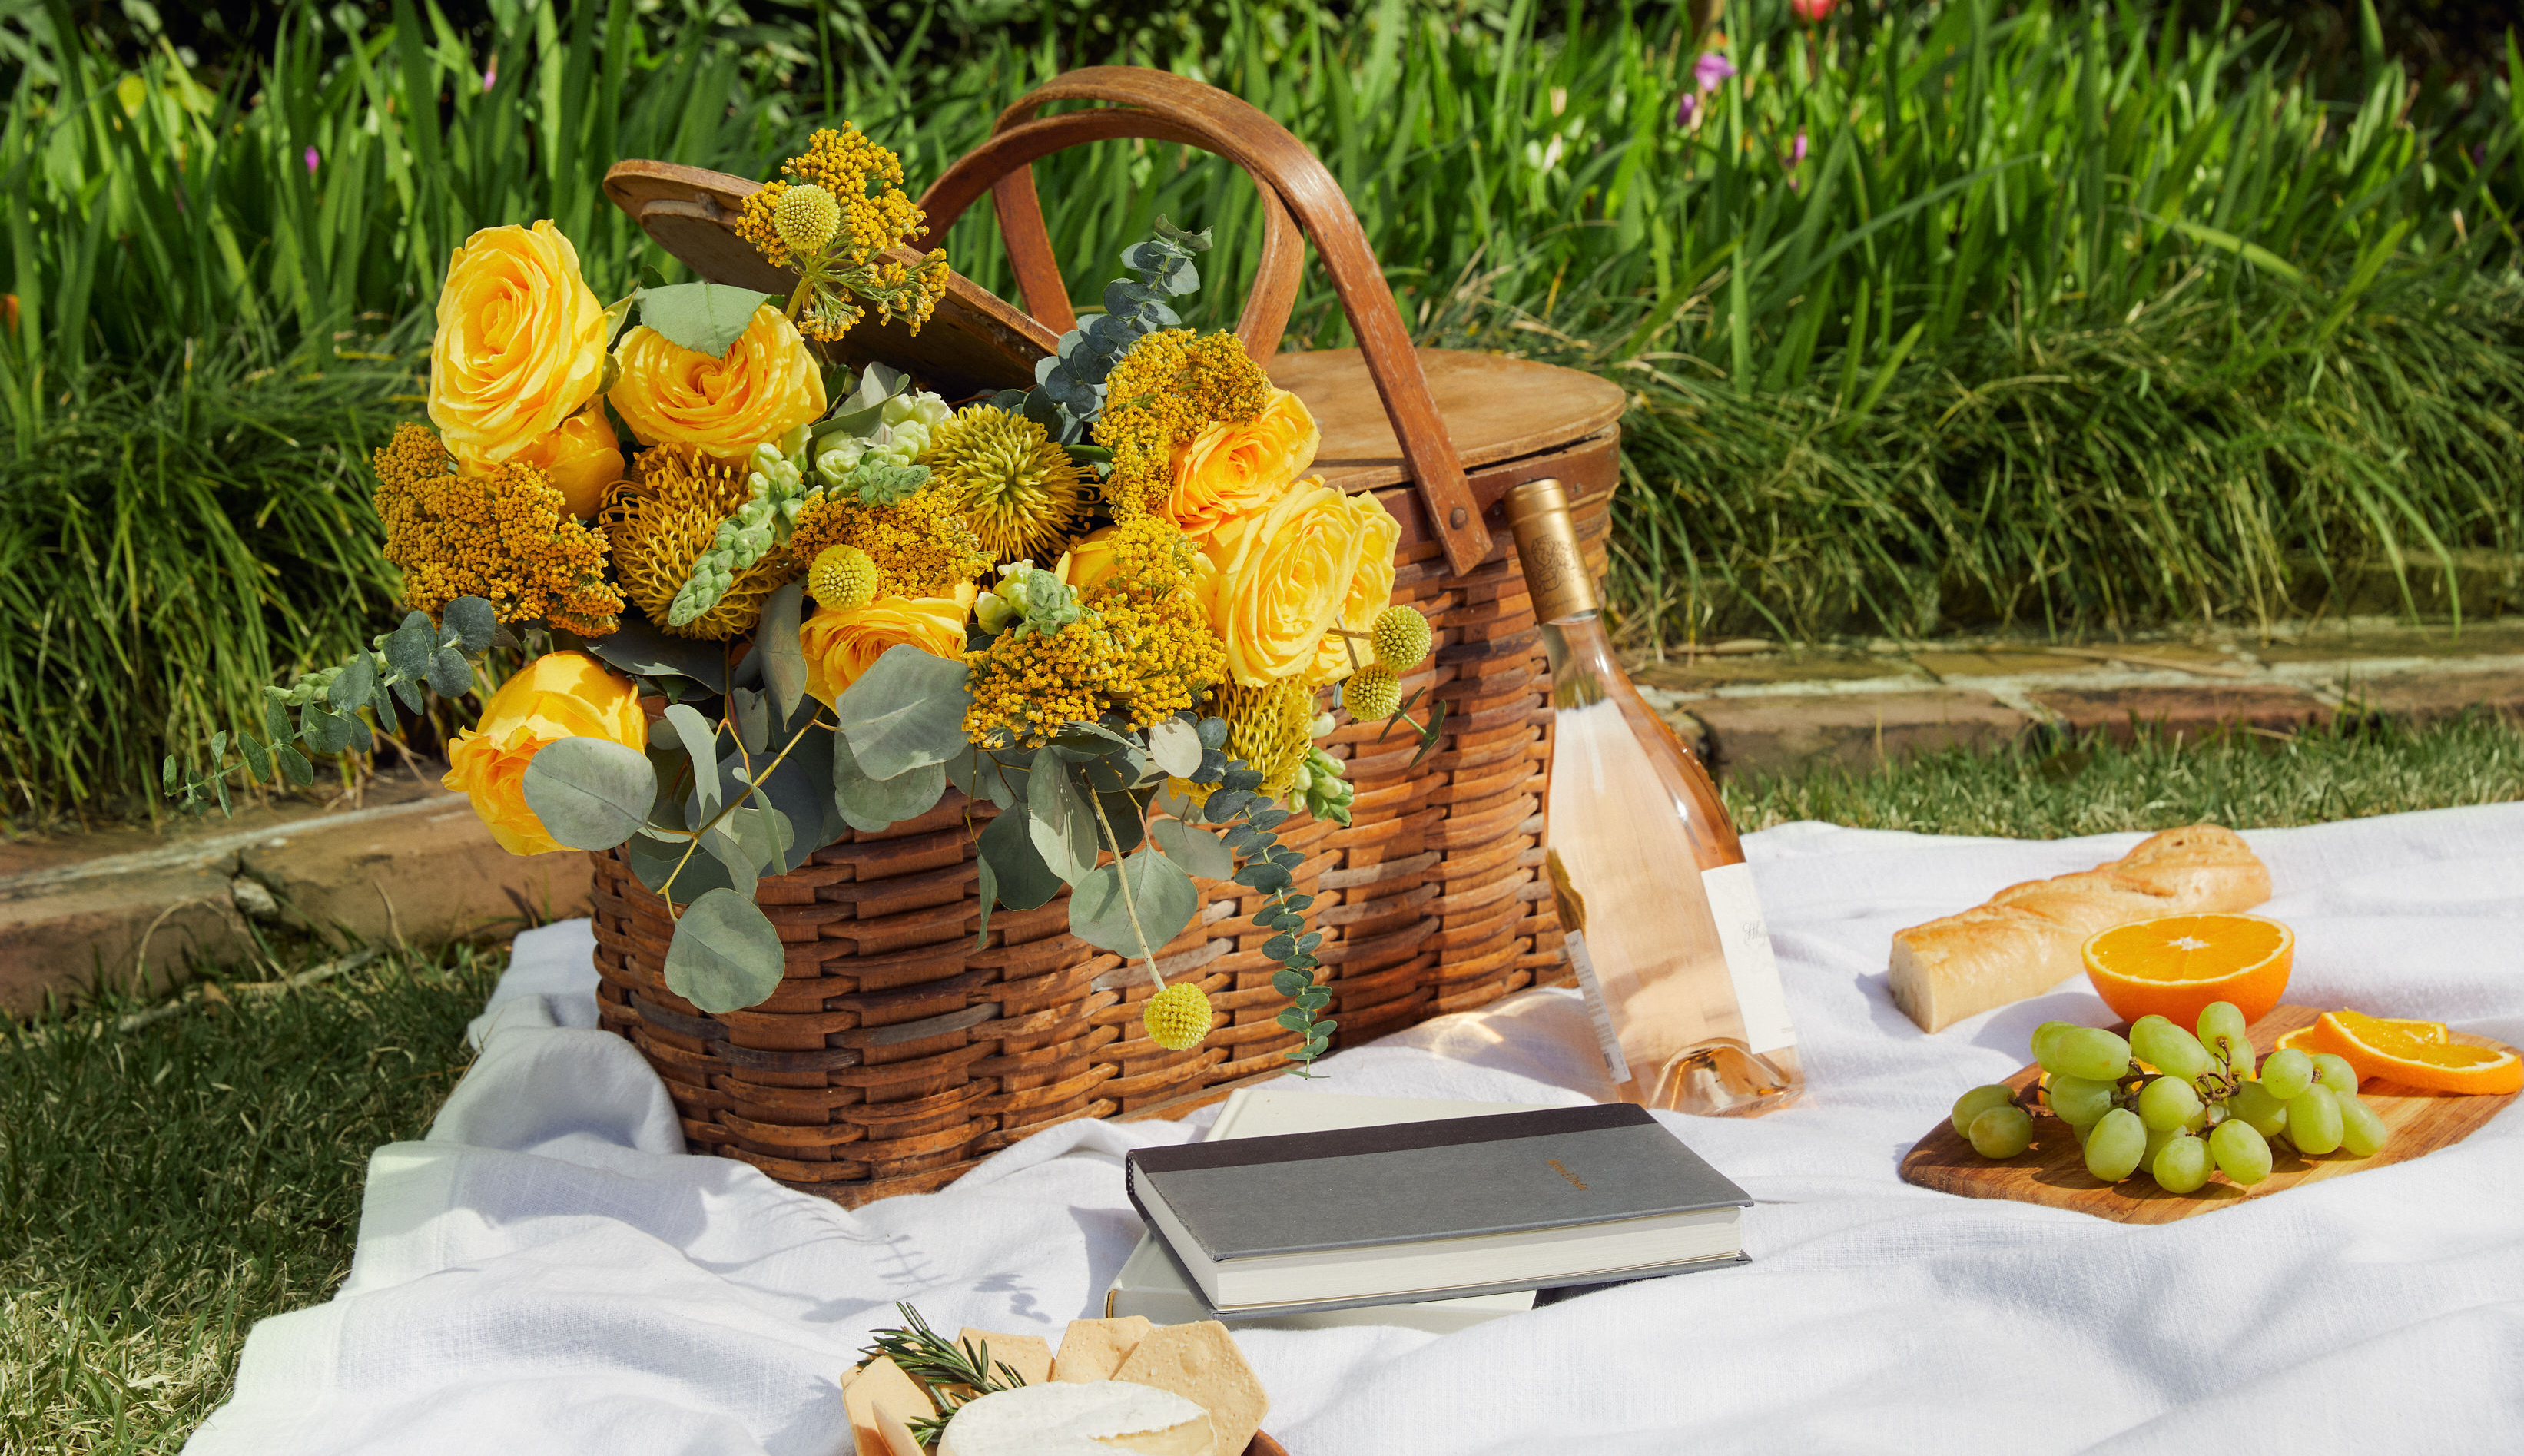 Bouquet of yellow flowers in picnic basket.